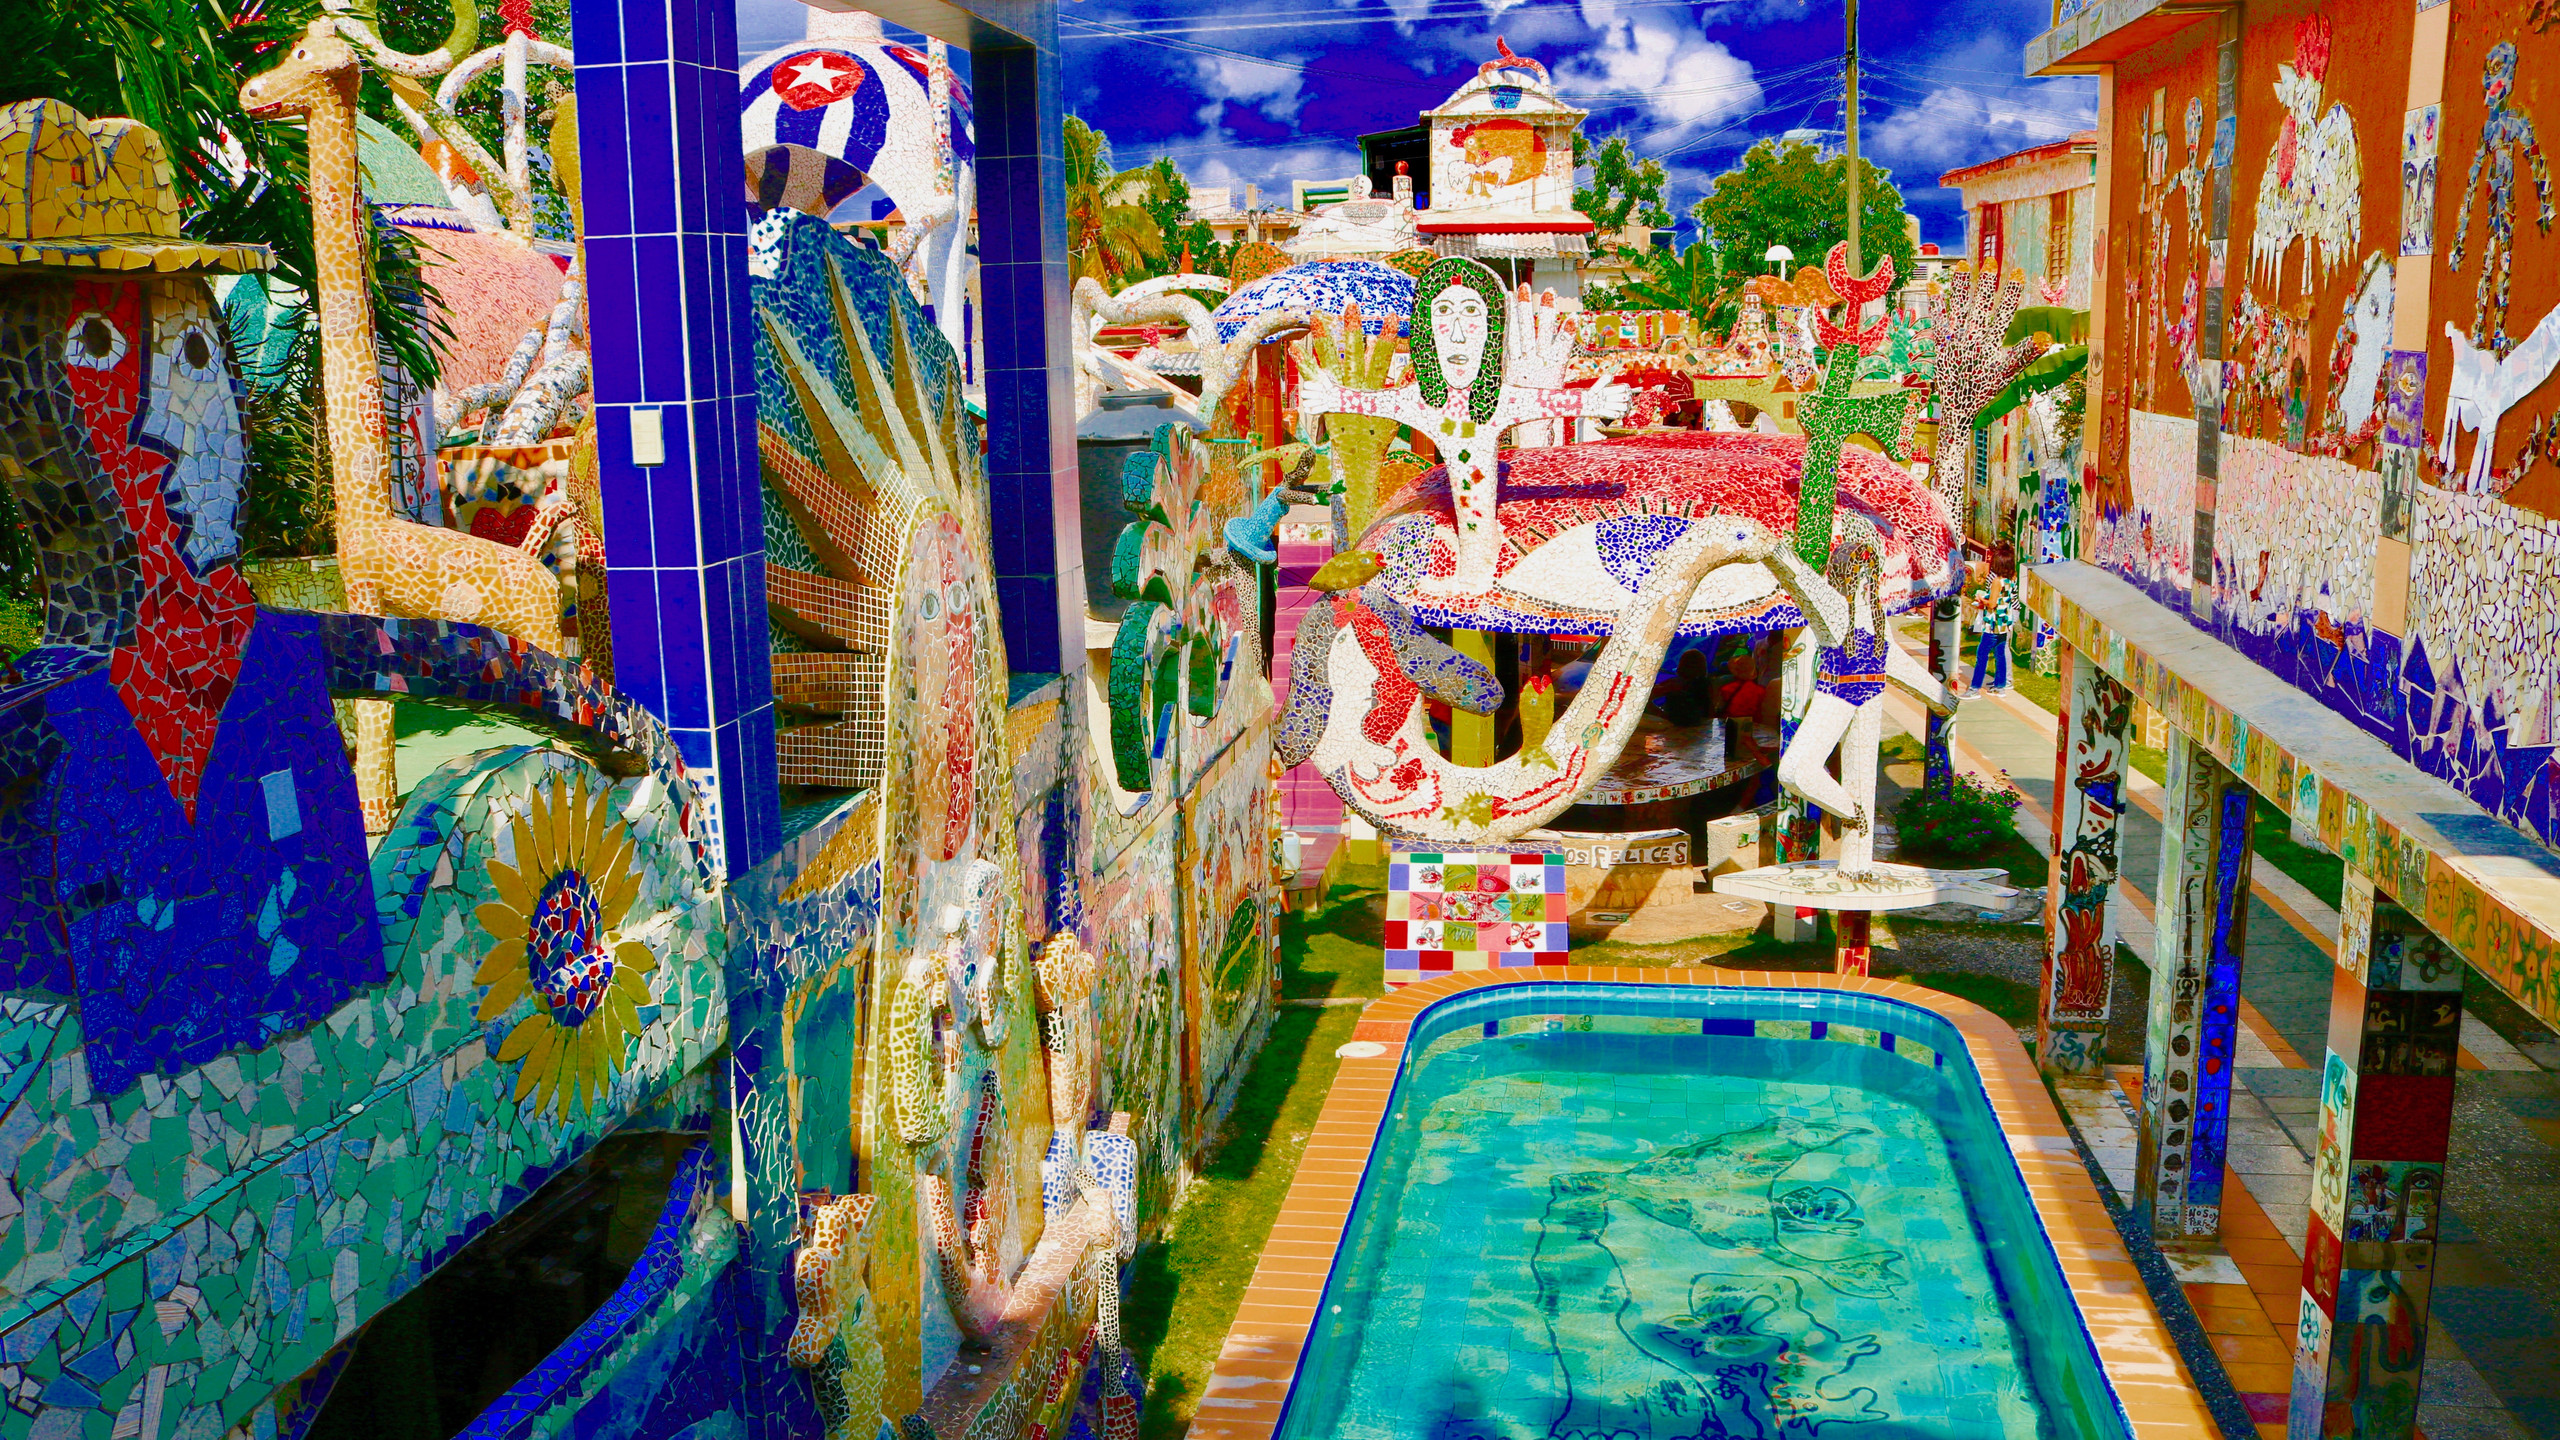 Pool surrounded by an entire structure covered in rainbow-hued mosaic tiles at Fusterlandia.